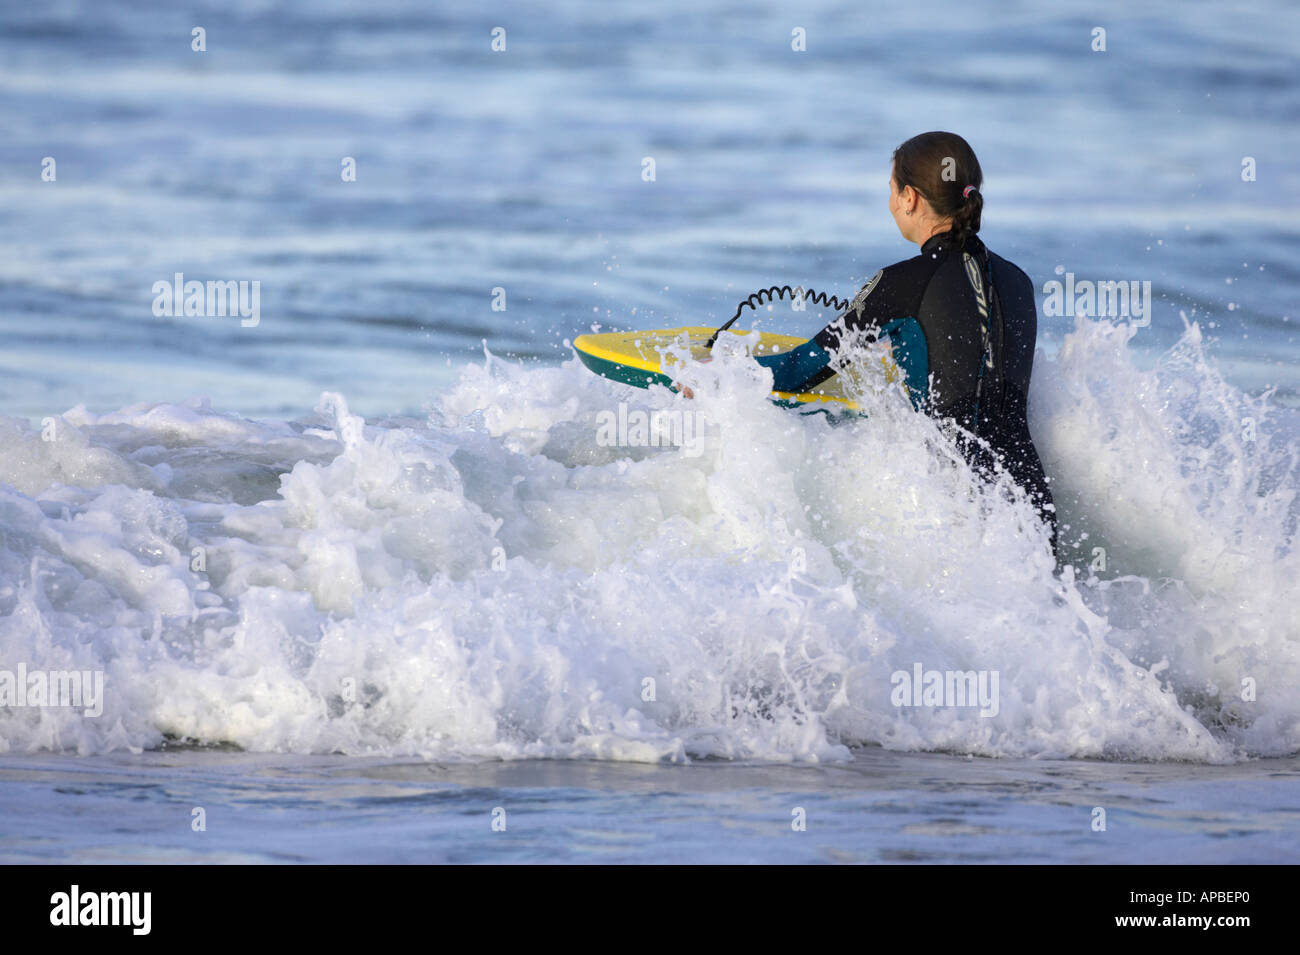 female bodyboarder in wetsuit pushes board into wave off white rocks beach portrush county antrim northern ireland Stock Photo